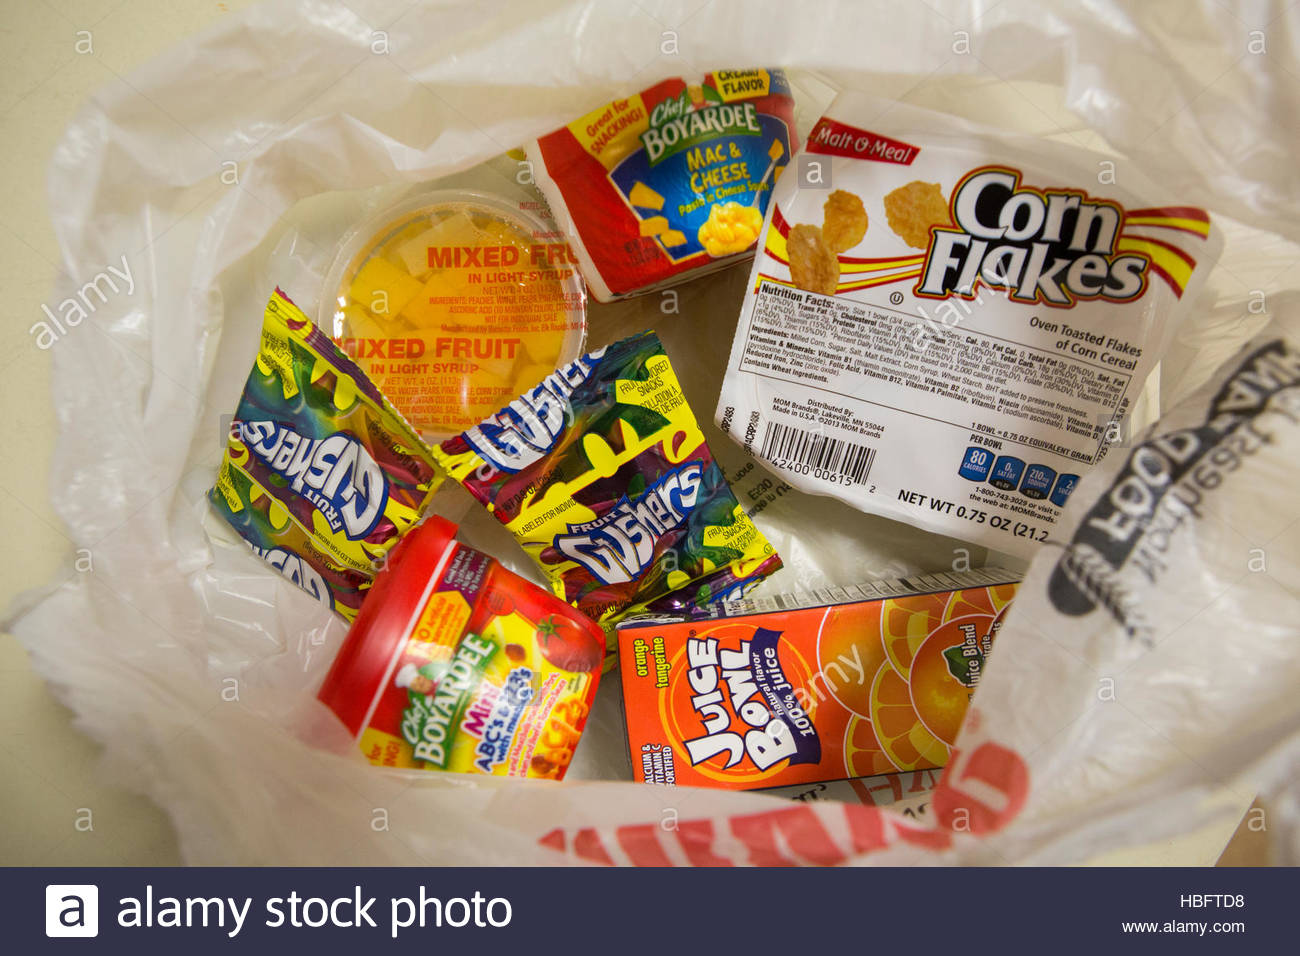 Bags of donated food provided by the national BackPack Program provides food for kids to take home on the weekends. - Stock Image